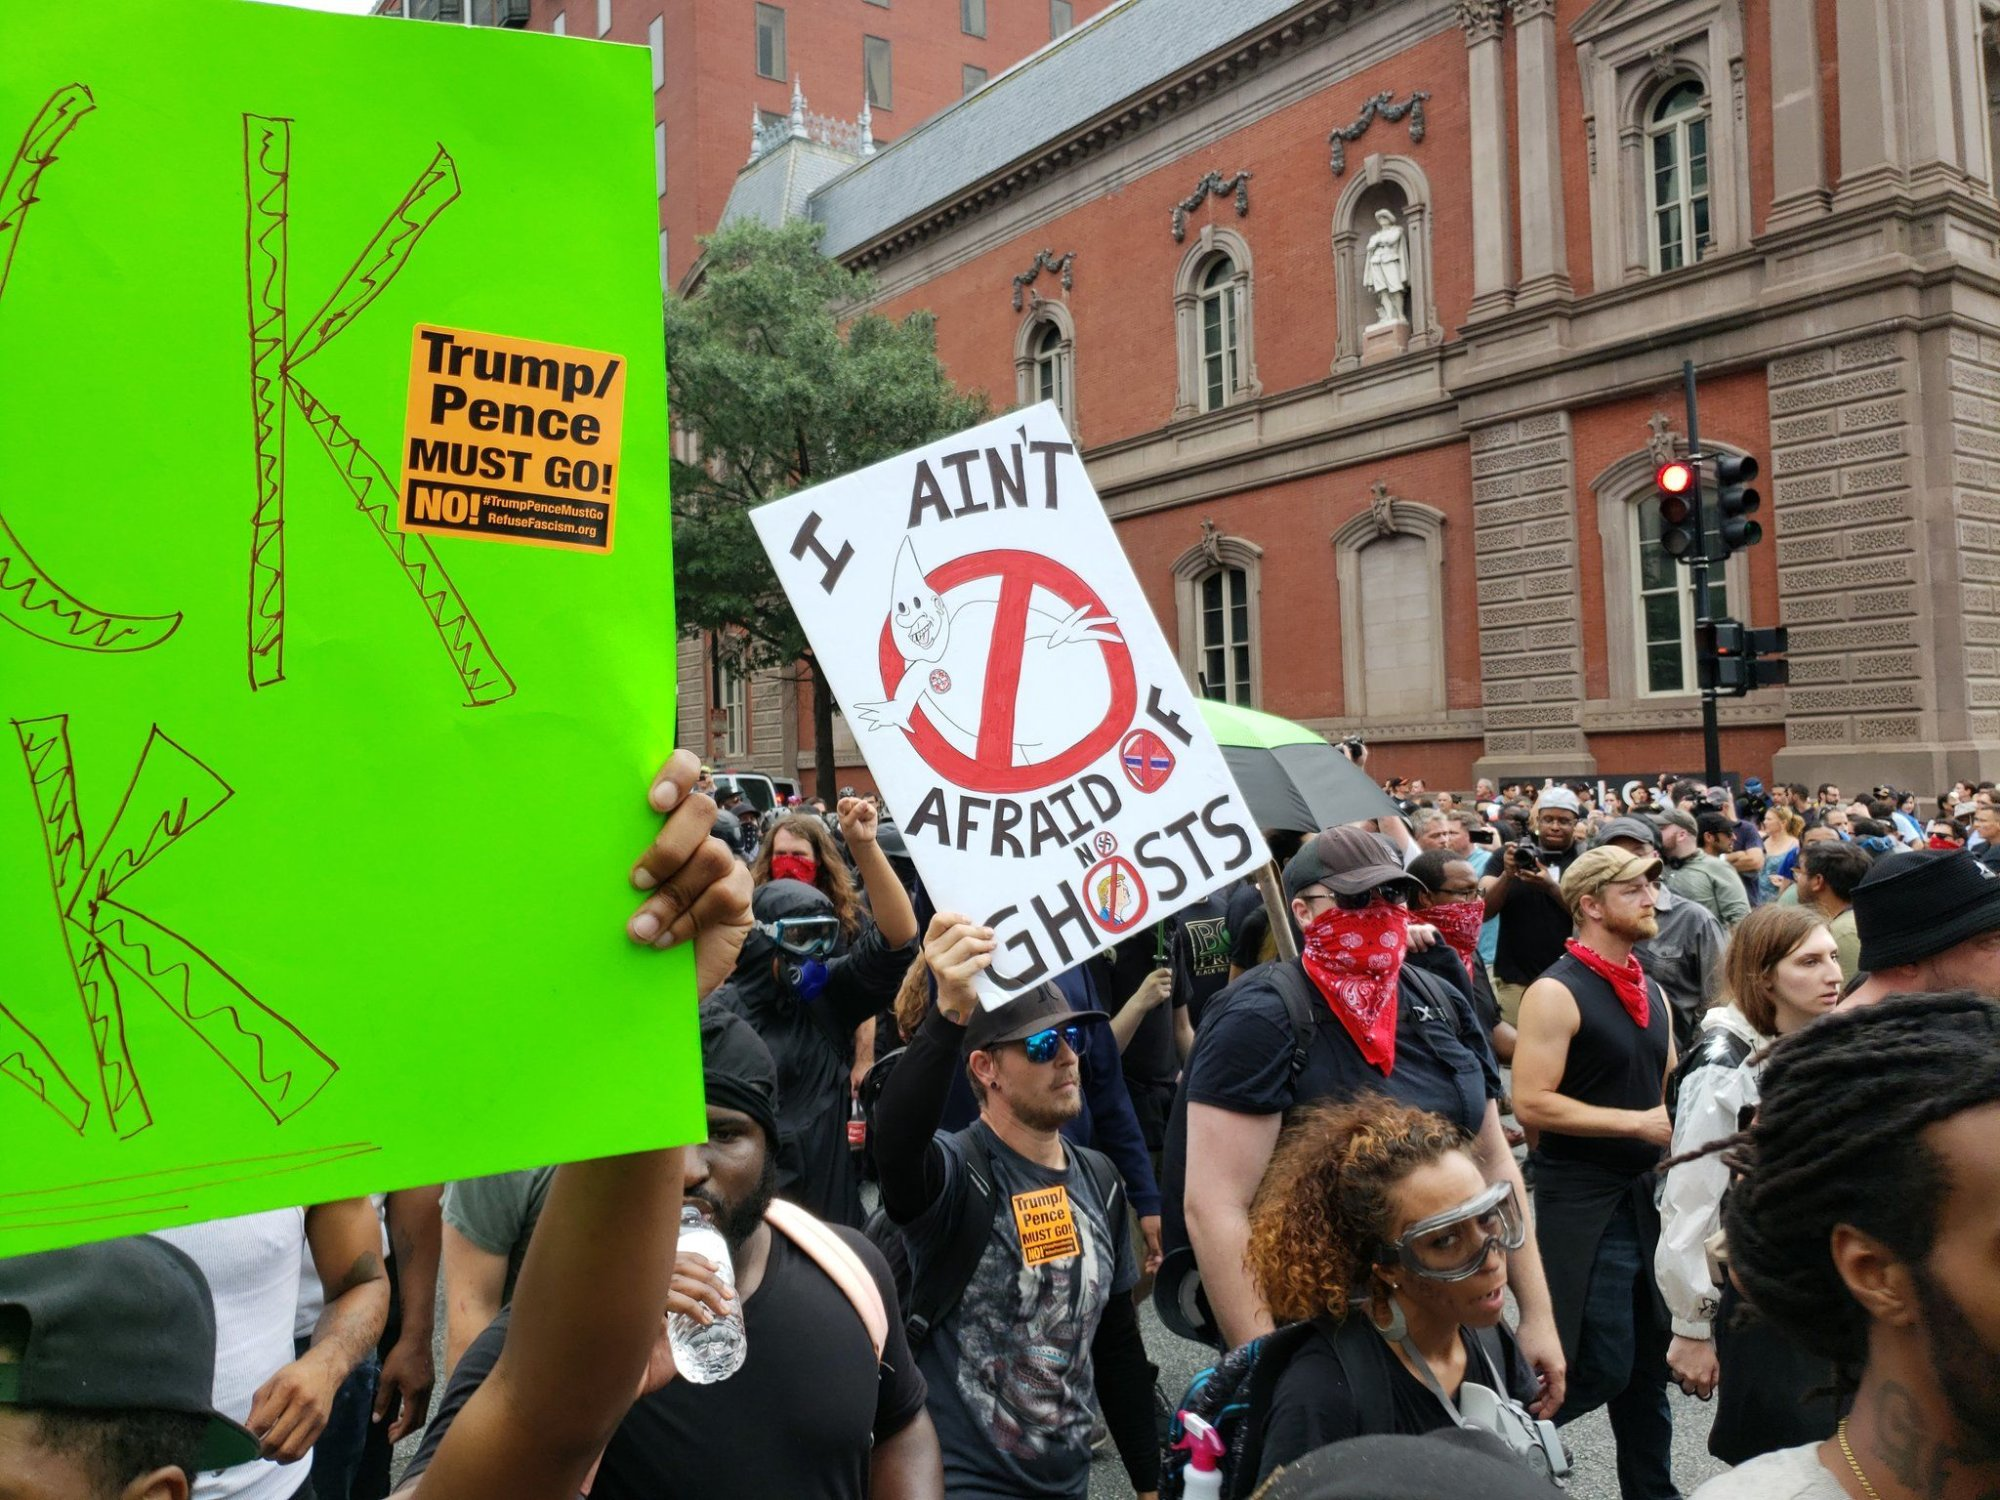 """A counterprotester holds a sign reading """"I ain't afraid of no ghosts"""" during the """"Unite the Right 2"""" in Washington, D.C. (Courtesy Wilson Dizard)"""